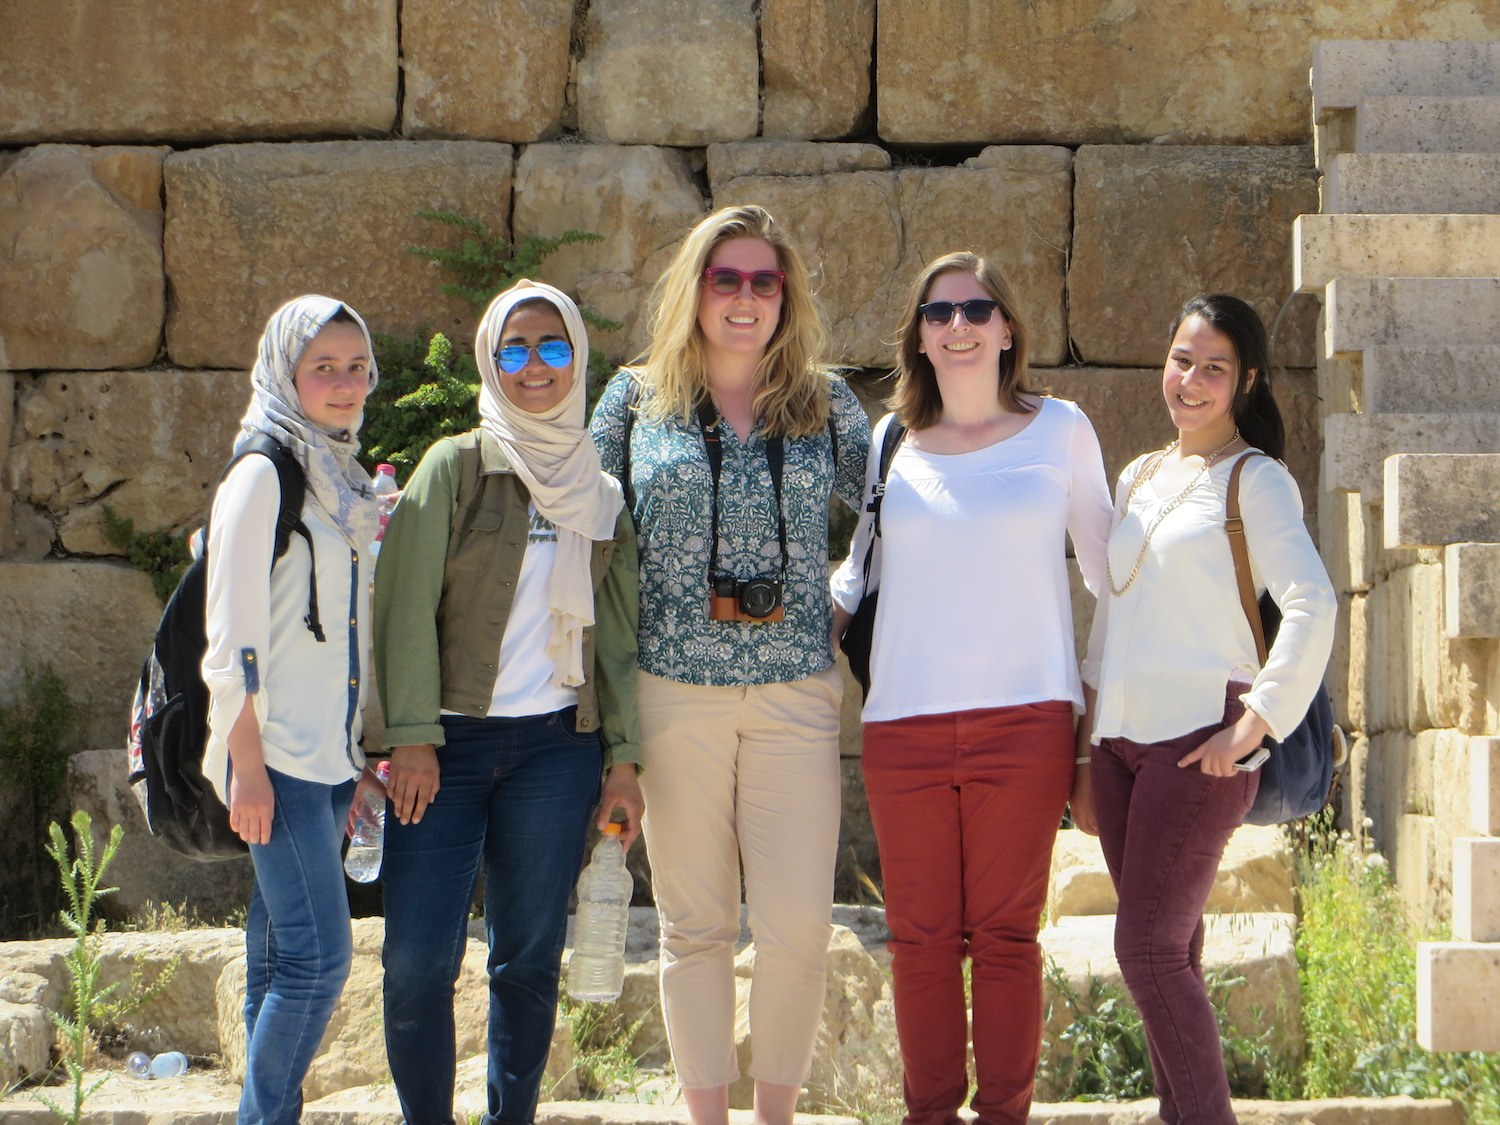 Taking selfies with the locals in Jerash